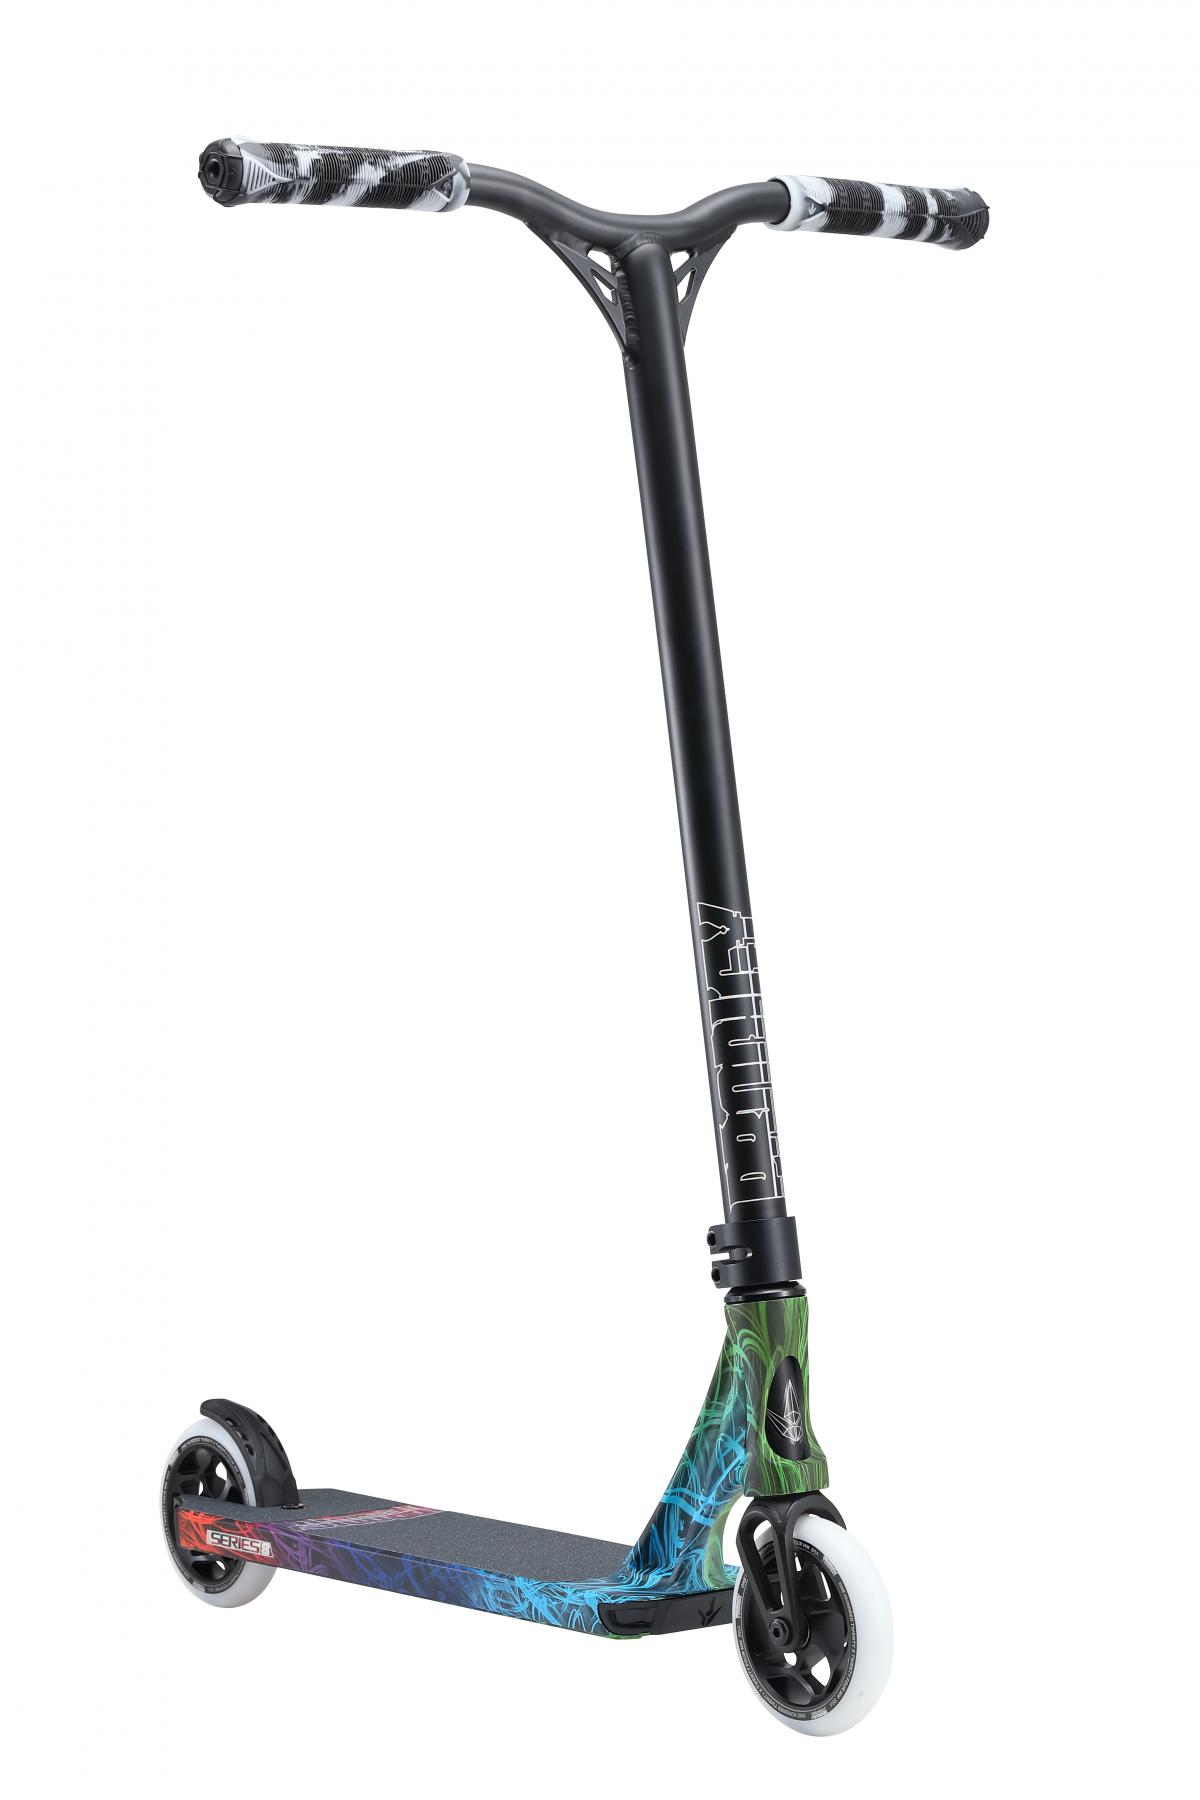 Envy Prodigy S8 Scratch Scooter